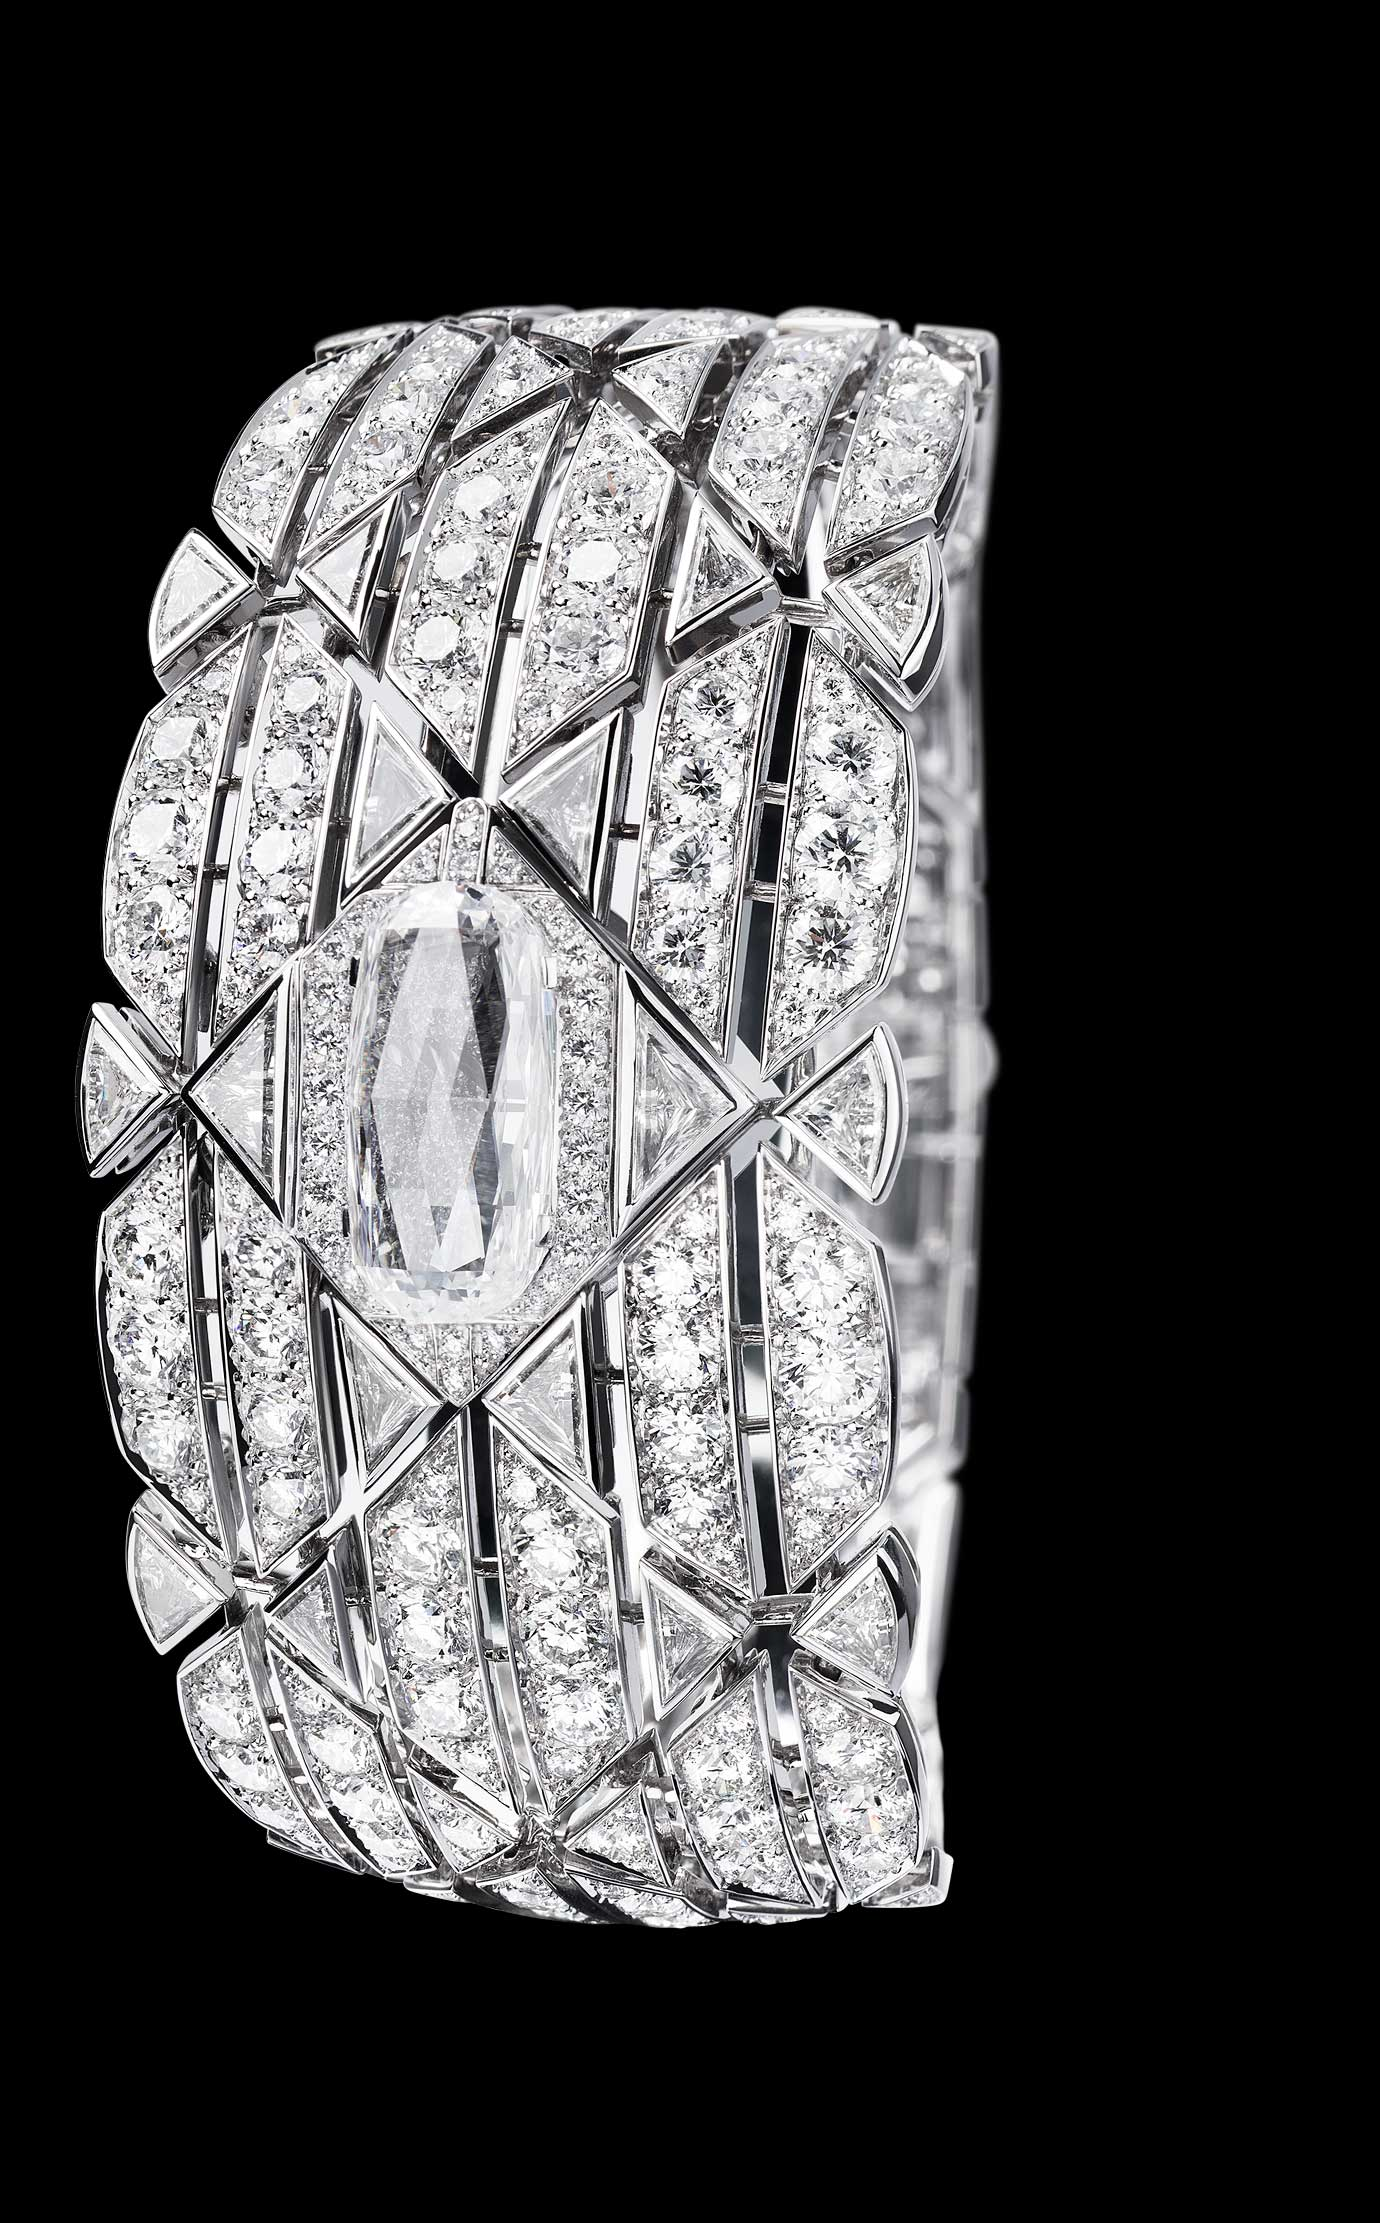 Les Eternelles de CHANEL. Secret cuff watch in 18K white gold. 5.26 carat exceptional diamond. 																											 - Closed - Enlarged view